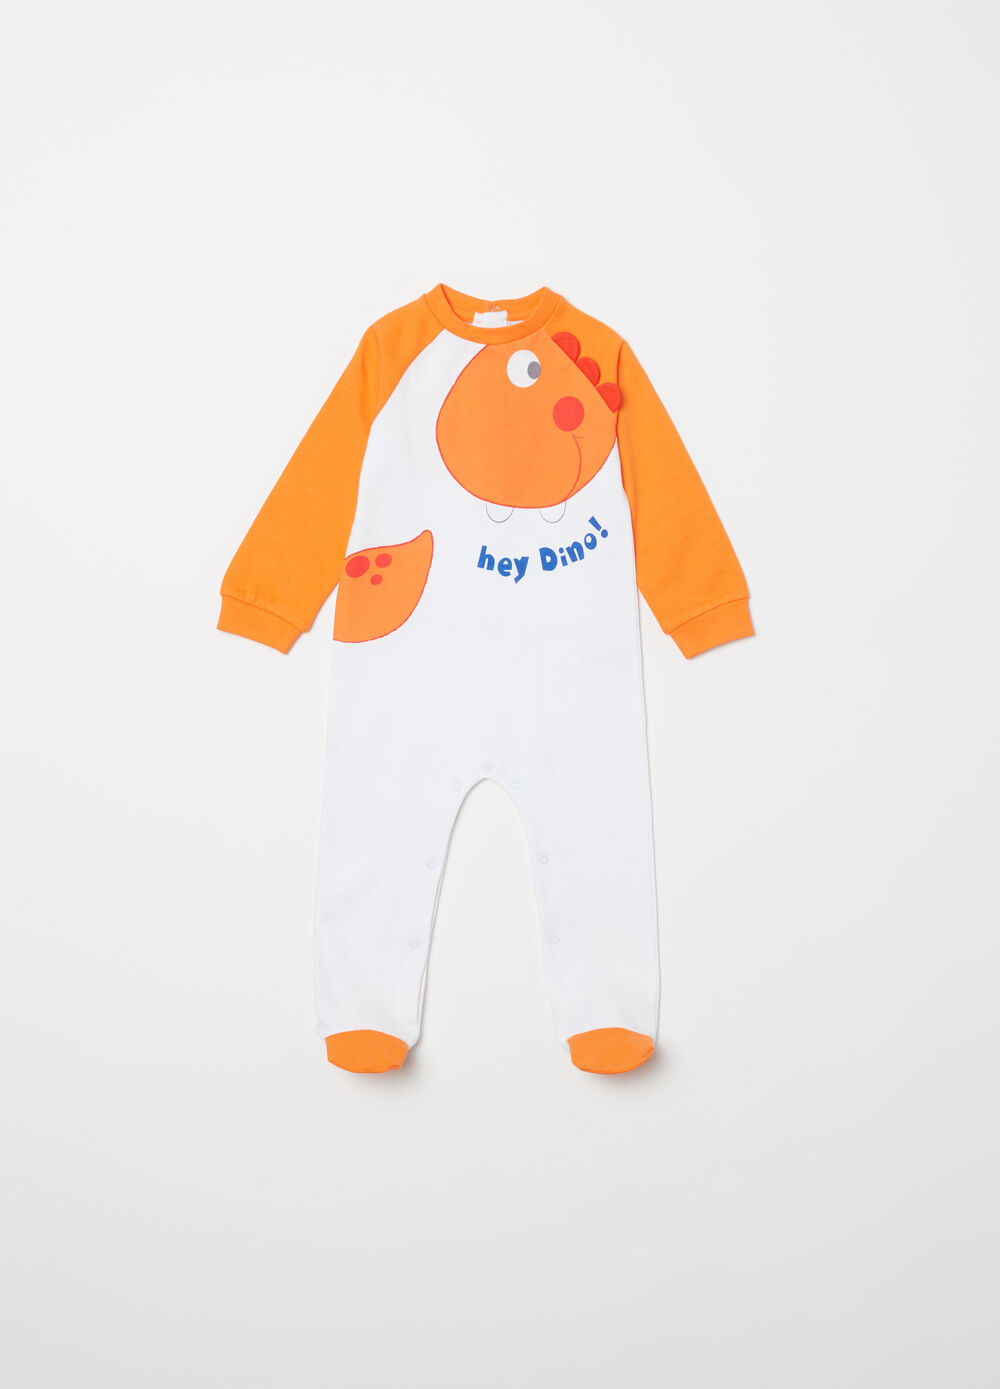 Two-tone sleepsuit